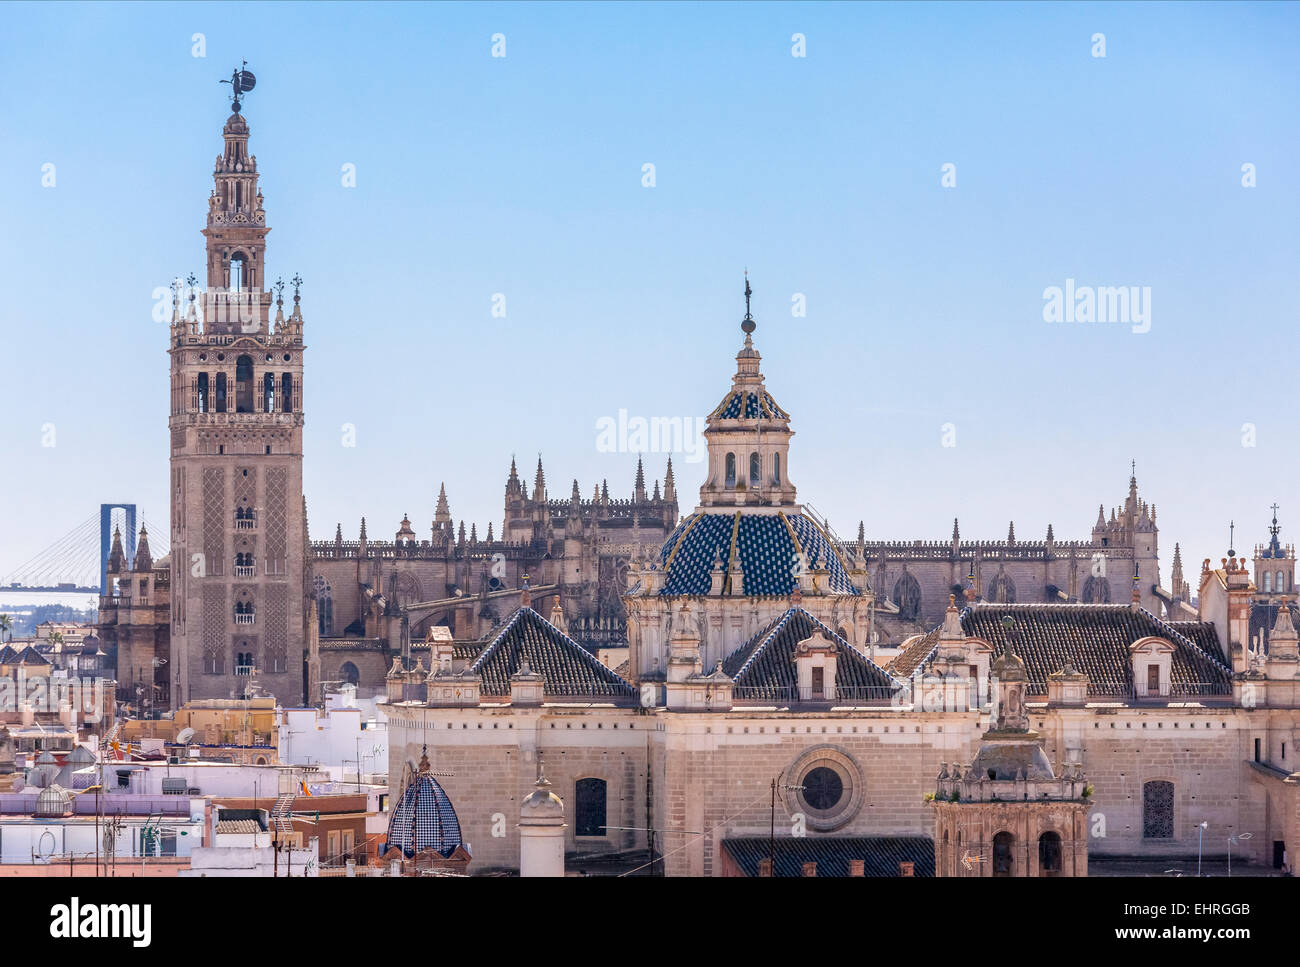 https://c7.alamy.com/comp/EHRGGB/seville-spain-skyline-with-la-giralda-tower-cathedral-el-salvador-EHRGGB.jpg